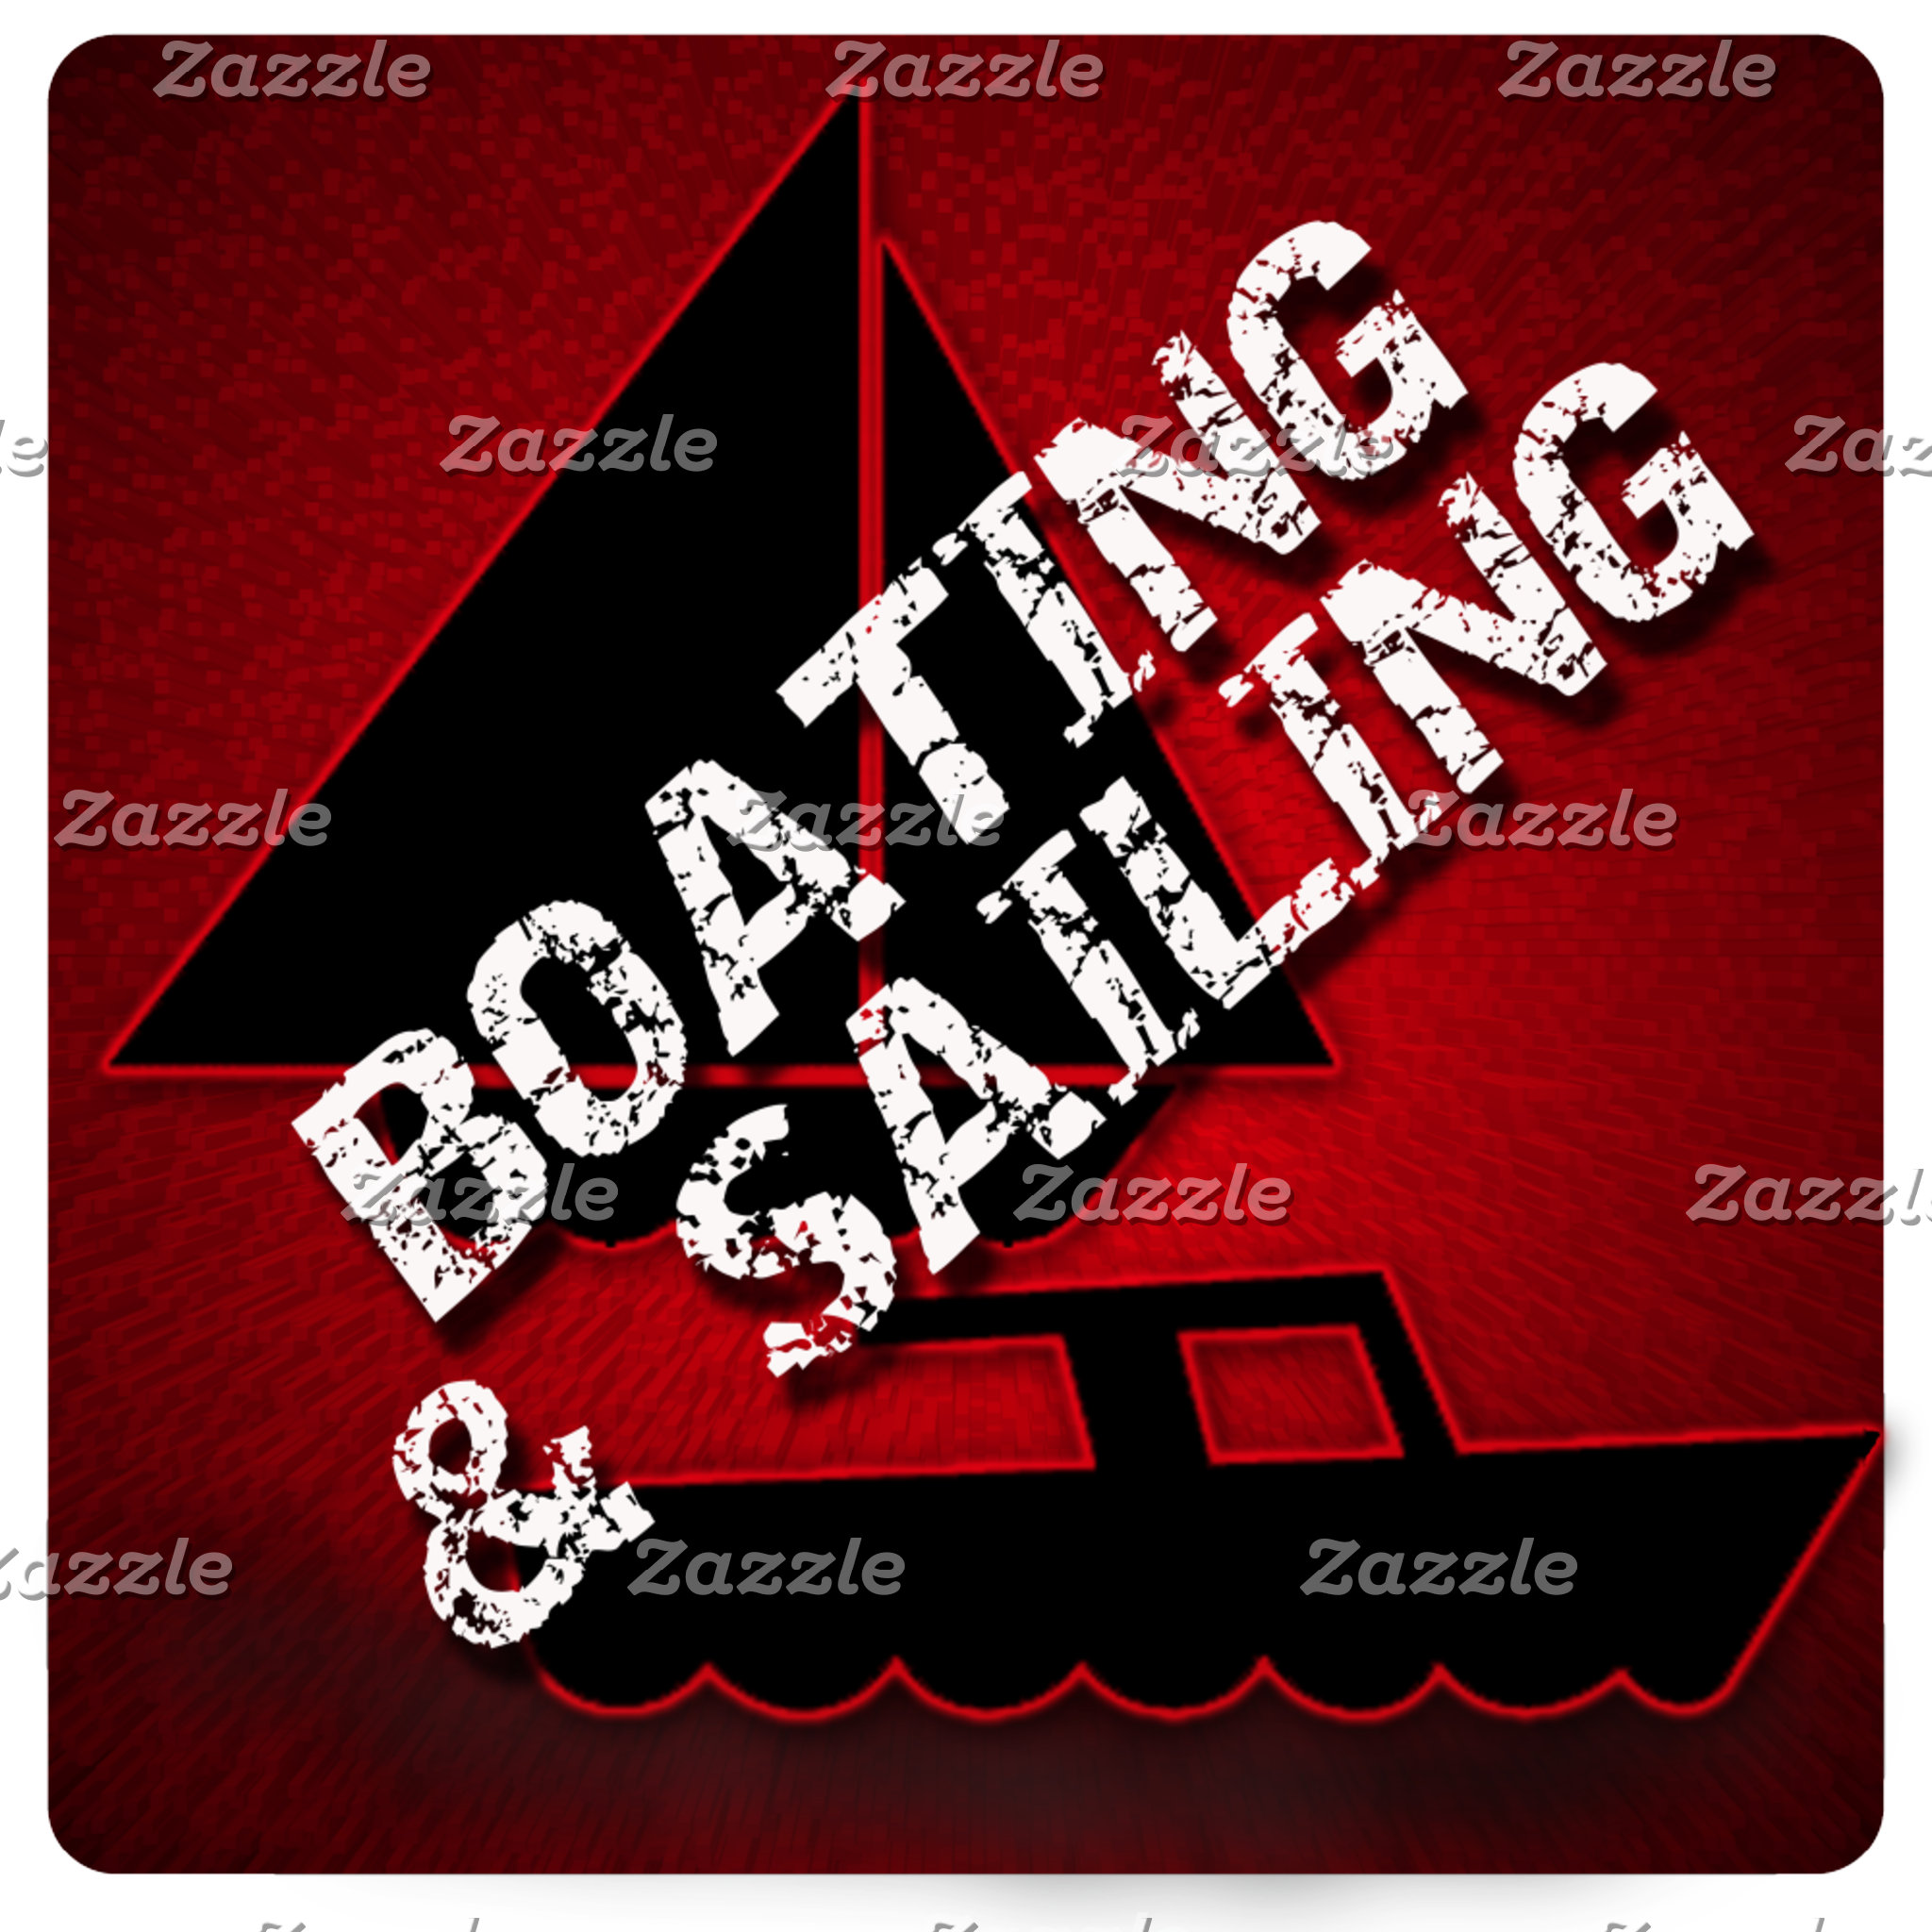 Boating and Sailing